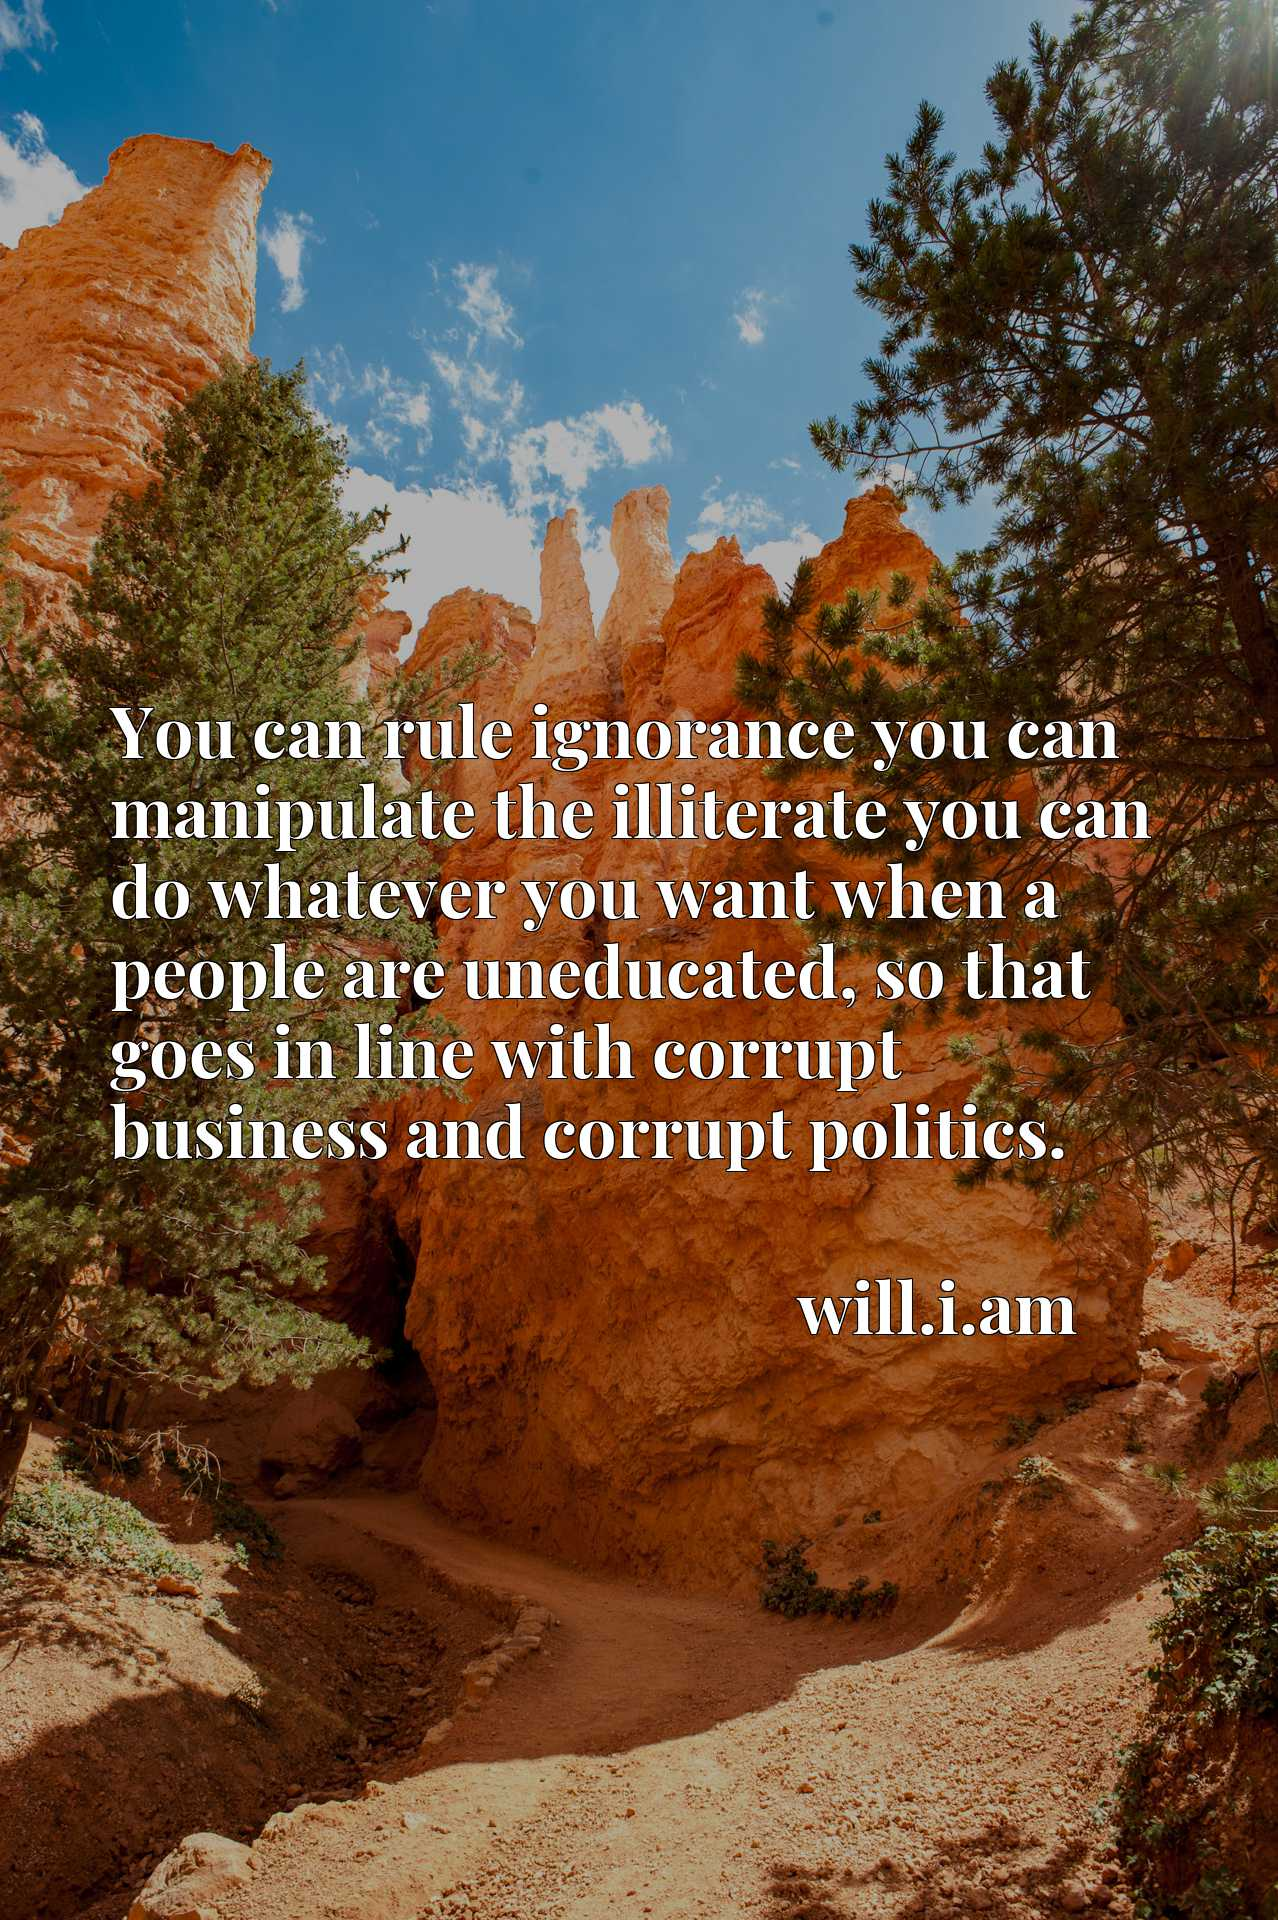 You can rule ignorance you can manipulate the illiterate you can do whatever you want when a people are uneducated, so that goes in line with corrupt business and corrupt politics.